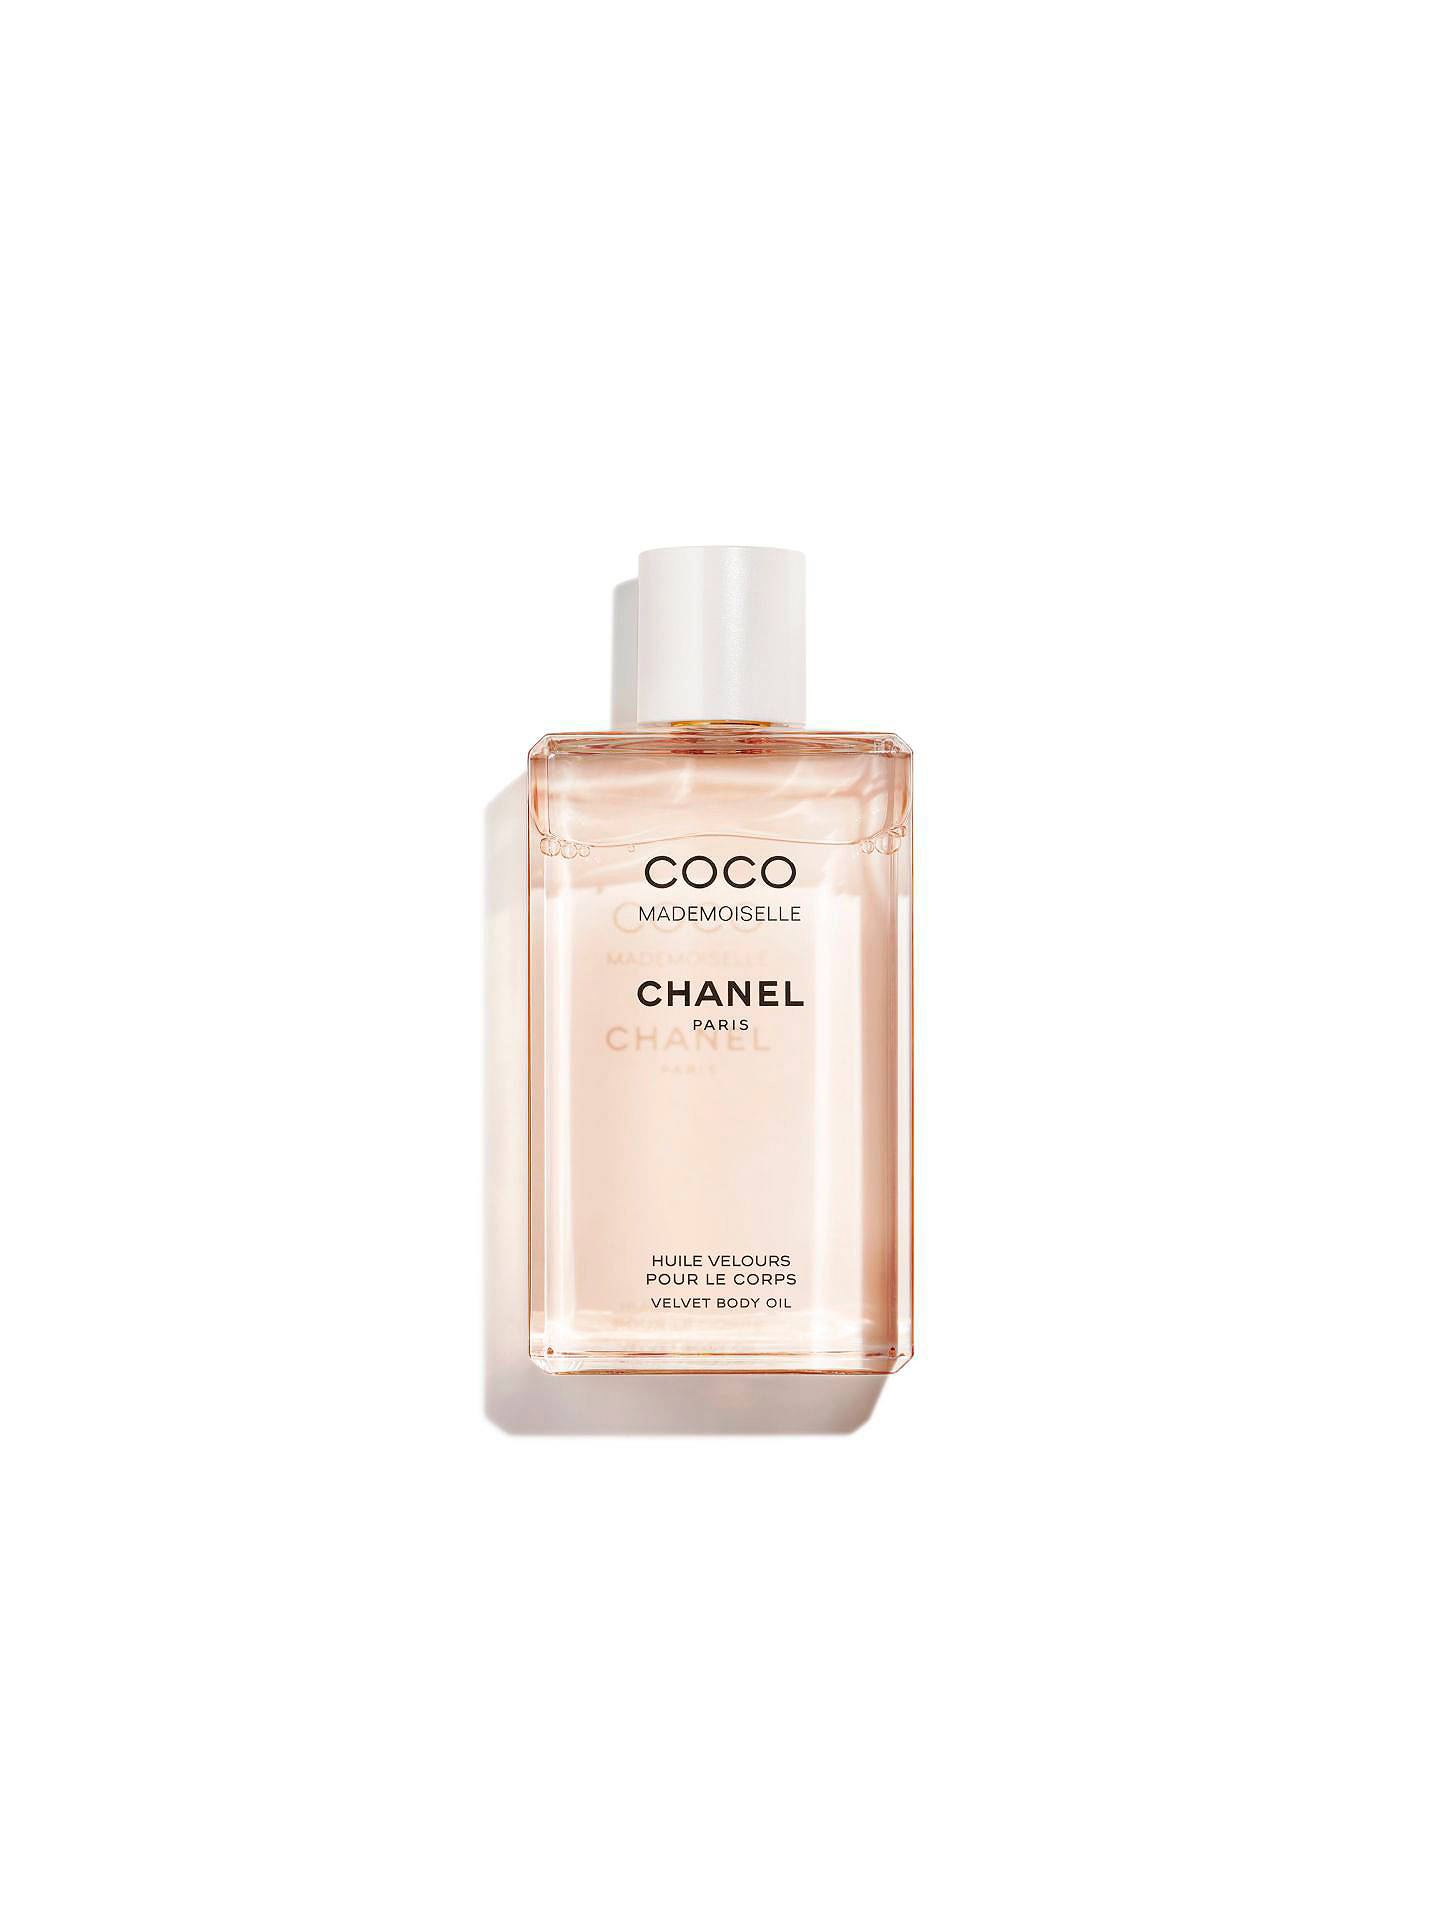 CHANEL COCO MADEMOISELLE Velvet Body Oil at John Lewis ...